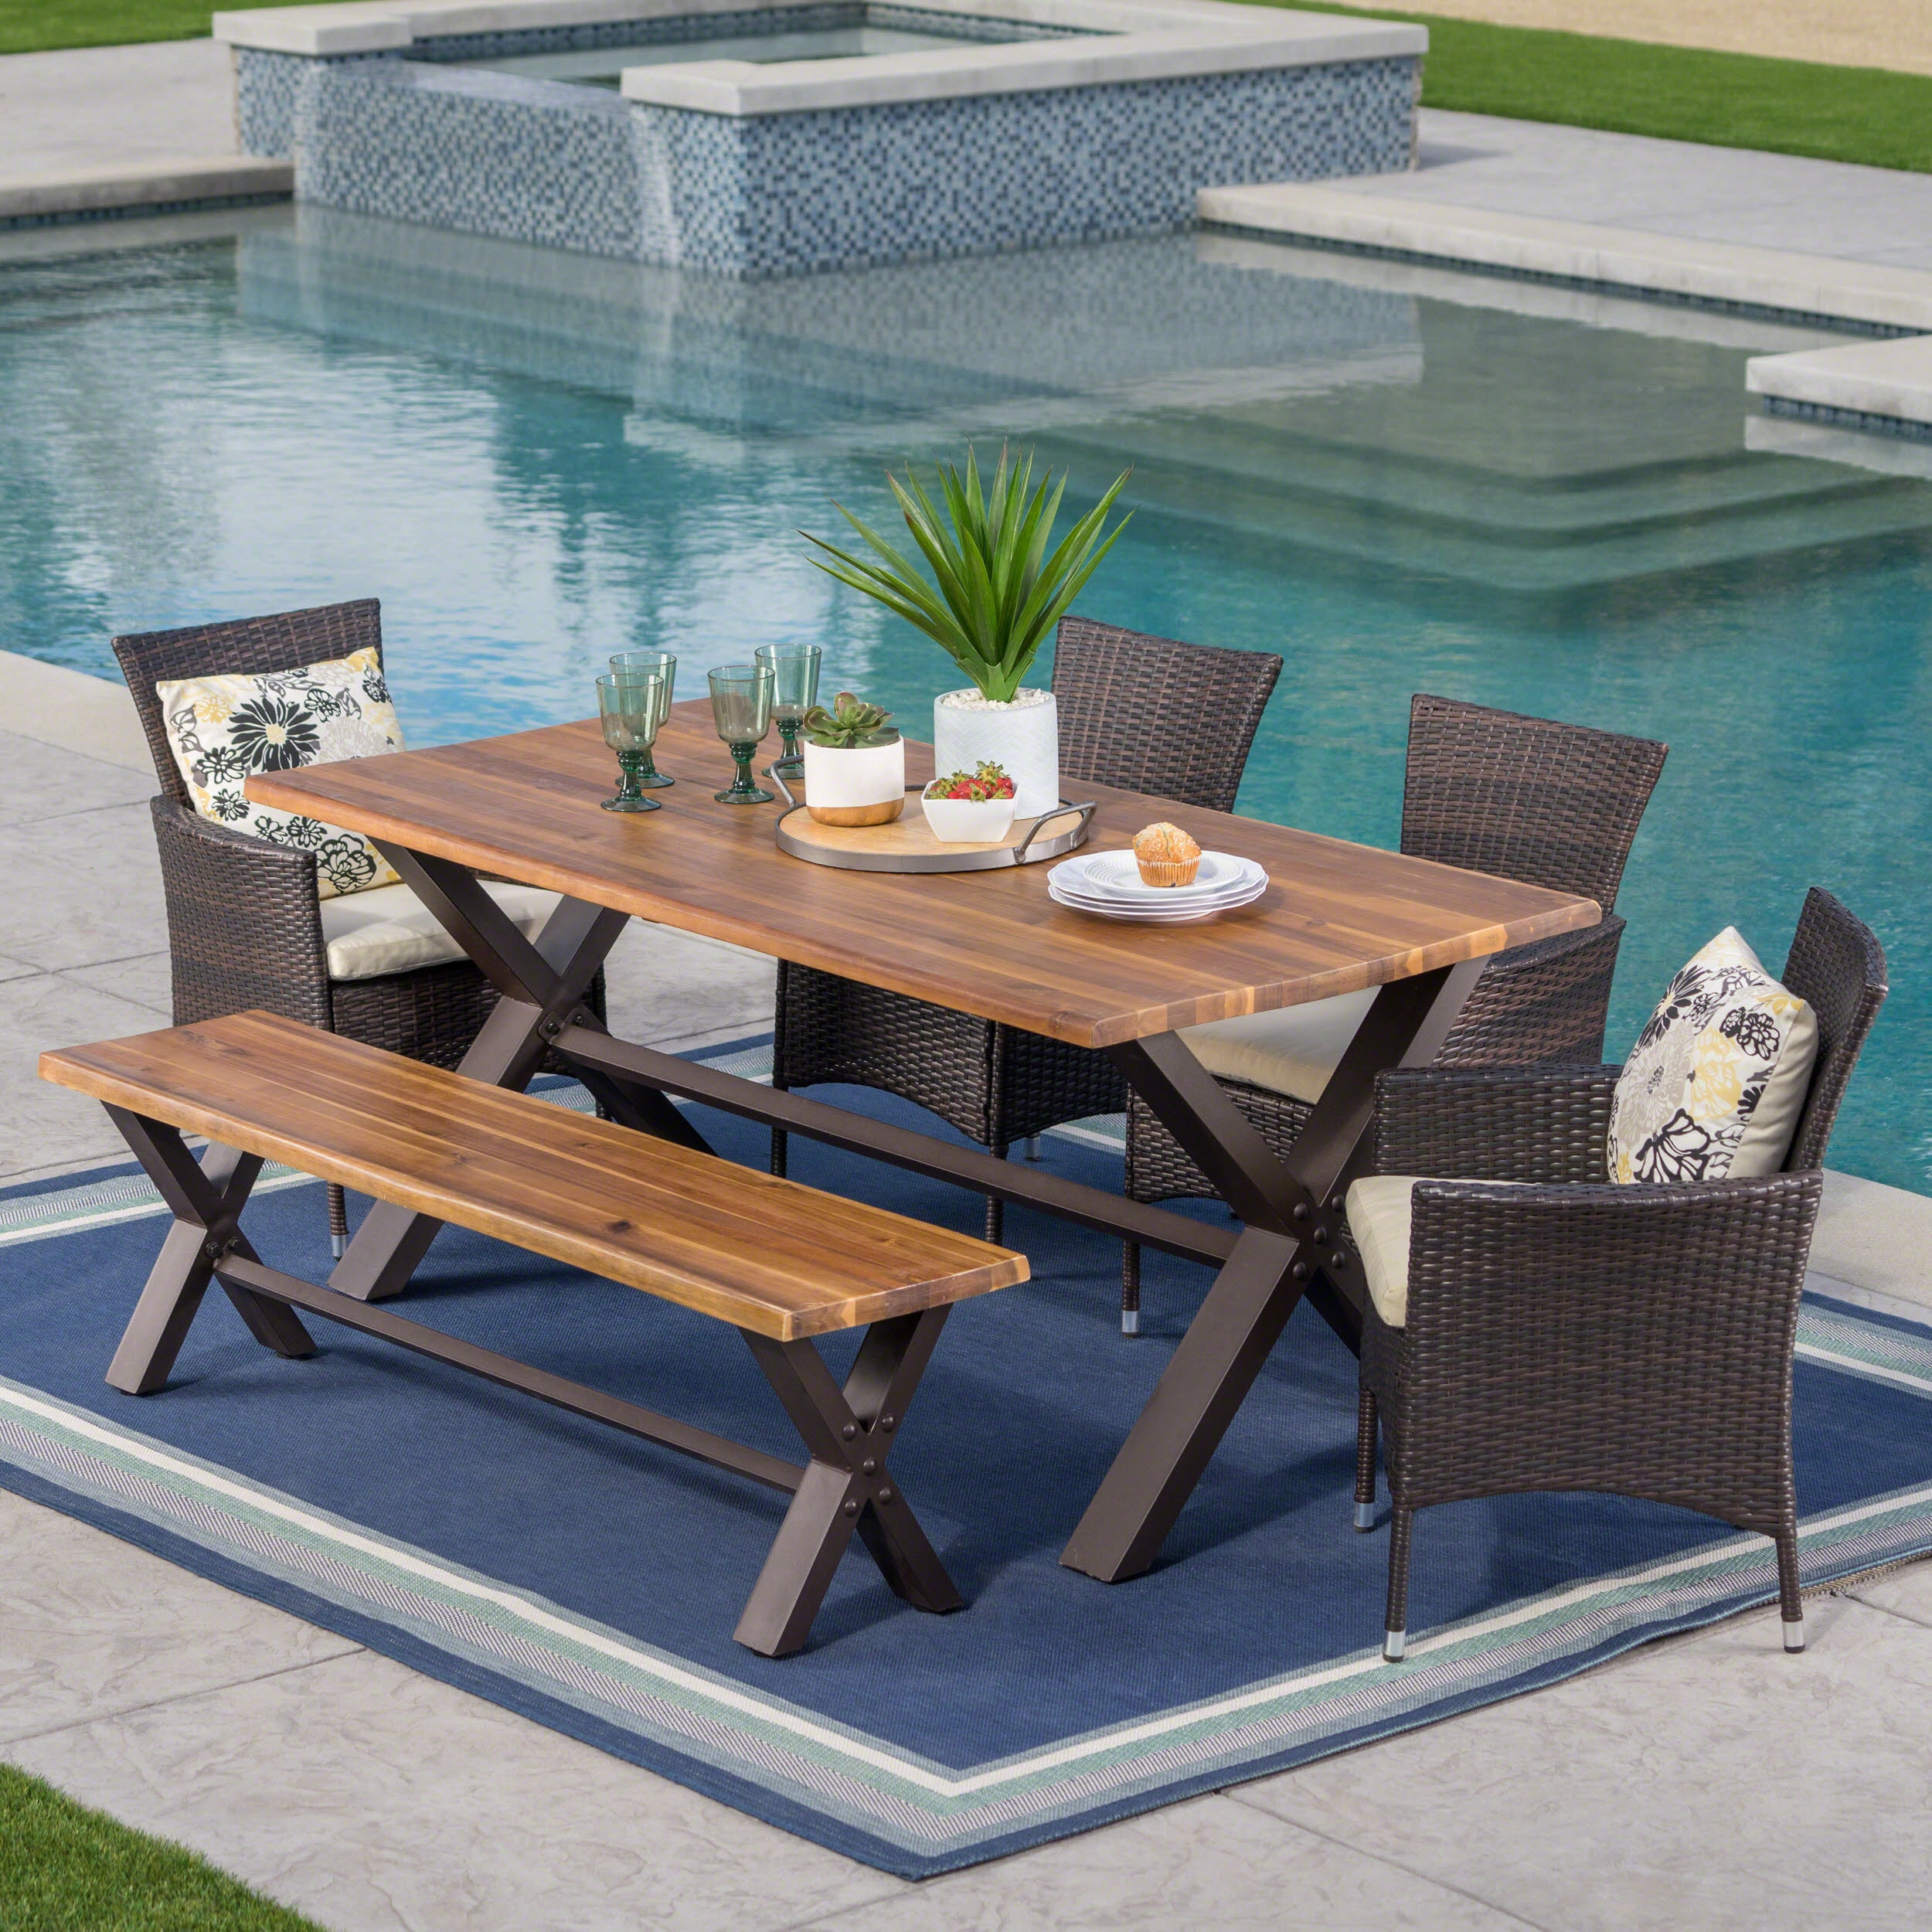 Ozark Outdoor 6-Piece Rectangle Wicker Wood Dining Set with Cushions by Christopher Knight Home & Shop Ozark Outdoor 6-Piece Rectangle Wicker Wood Dining Set with ...